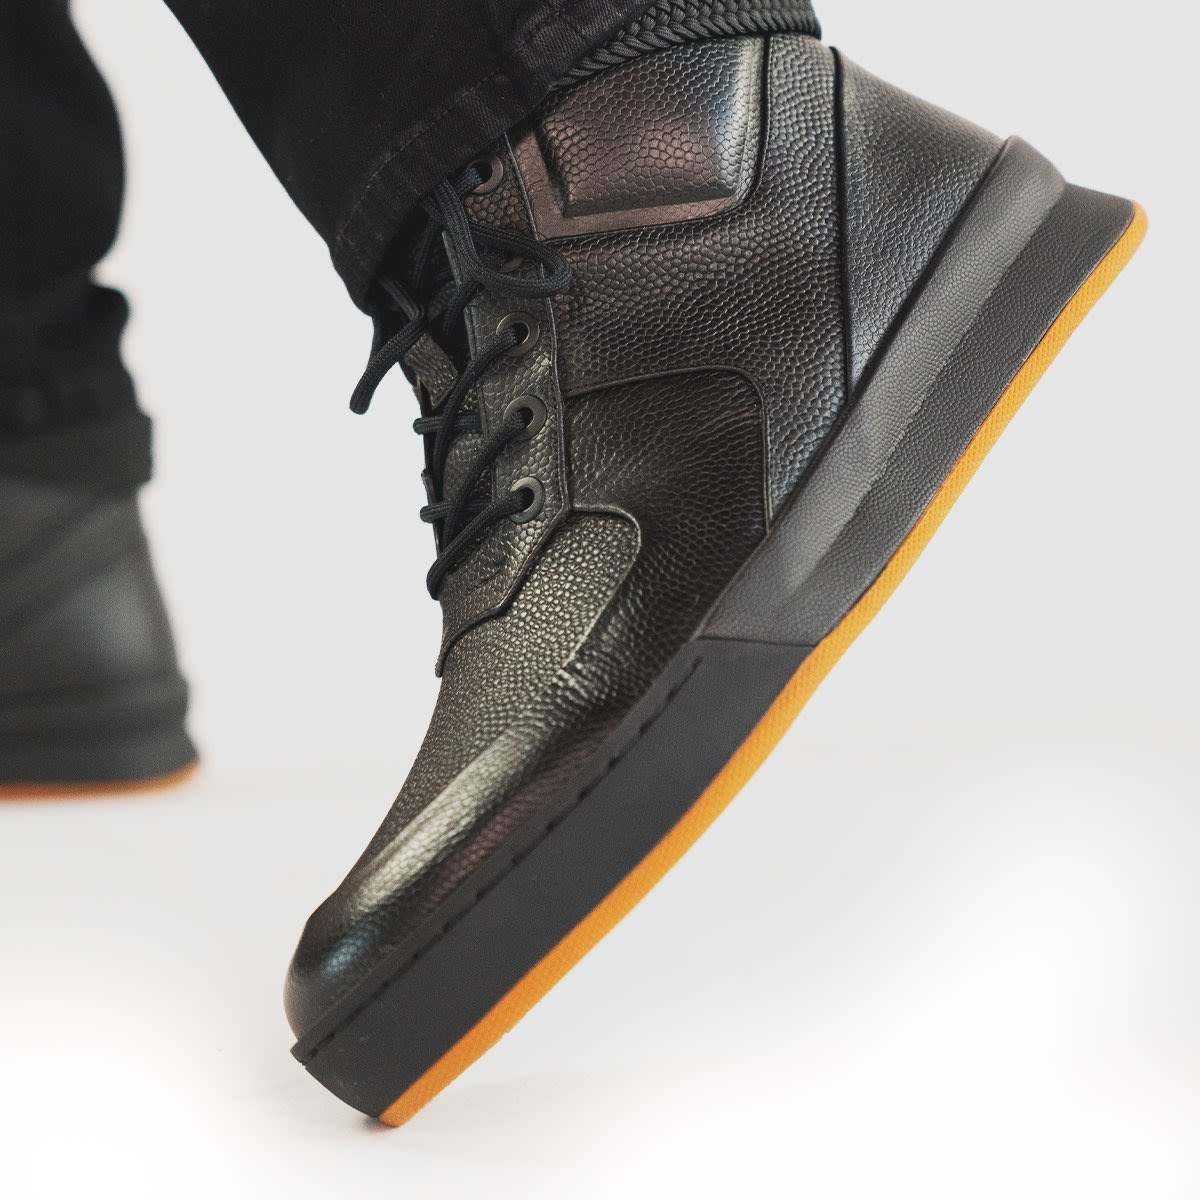 Dope sneakers for the NYC life